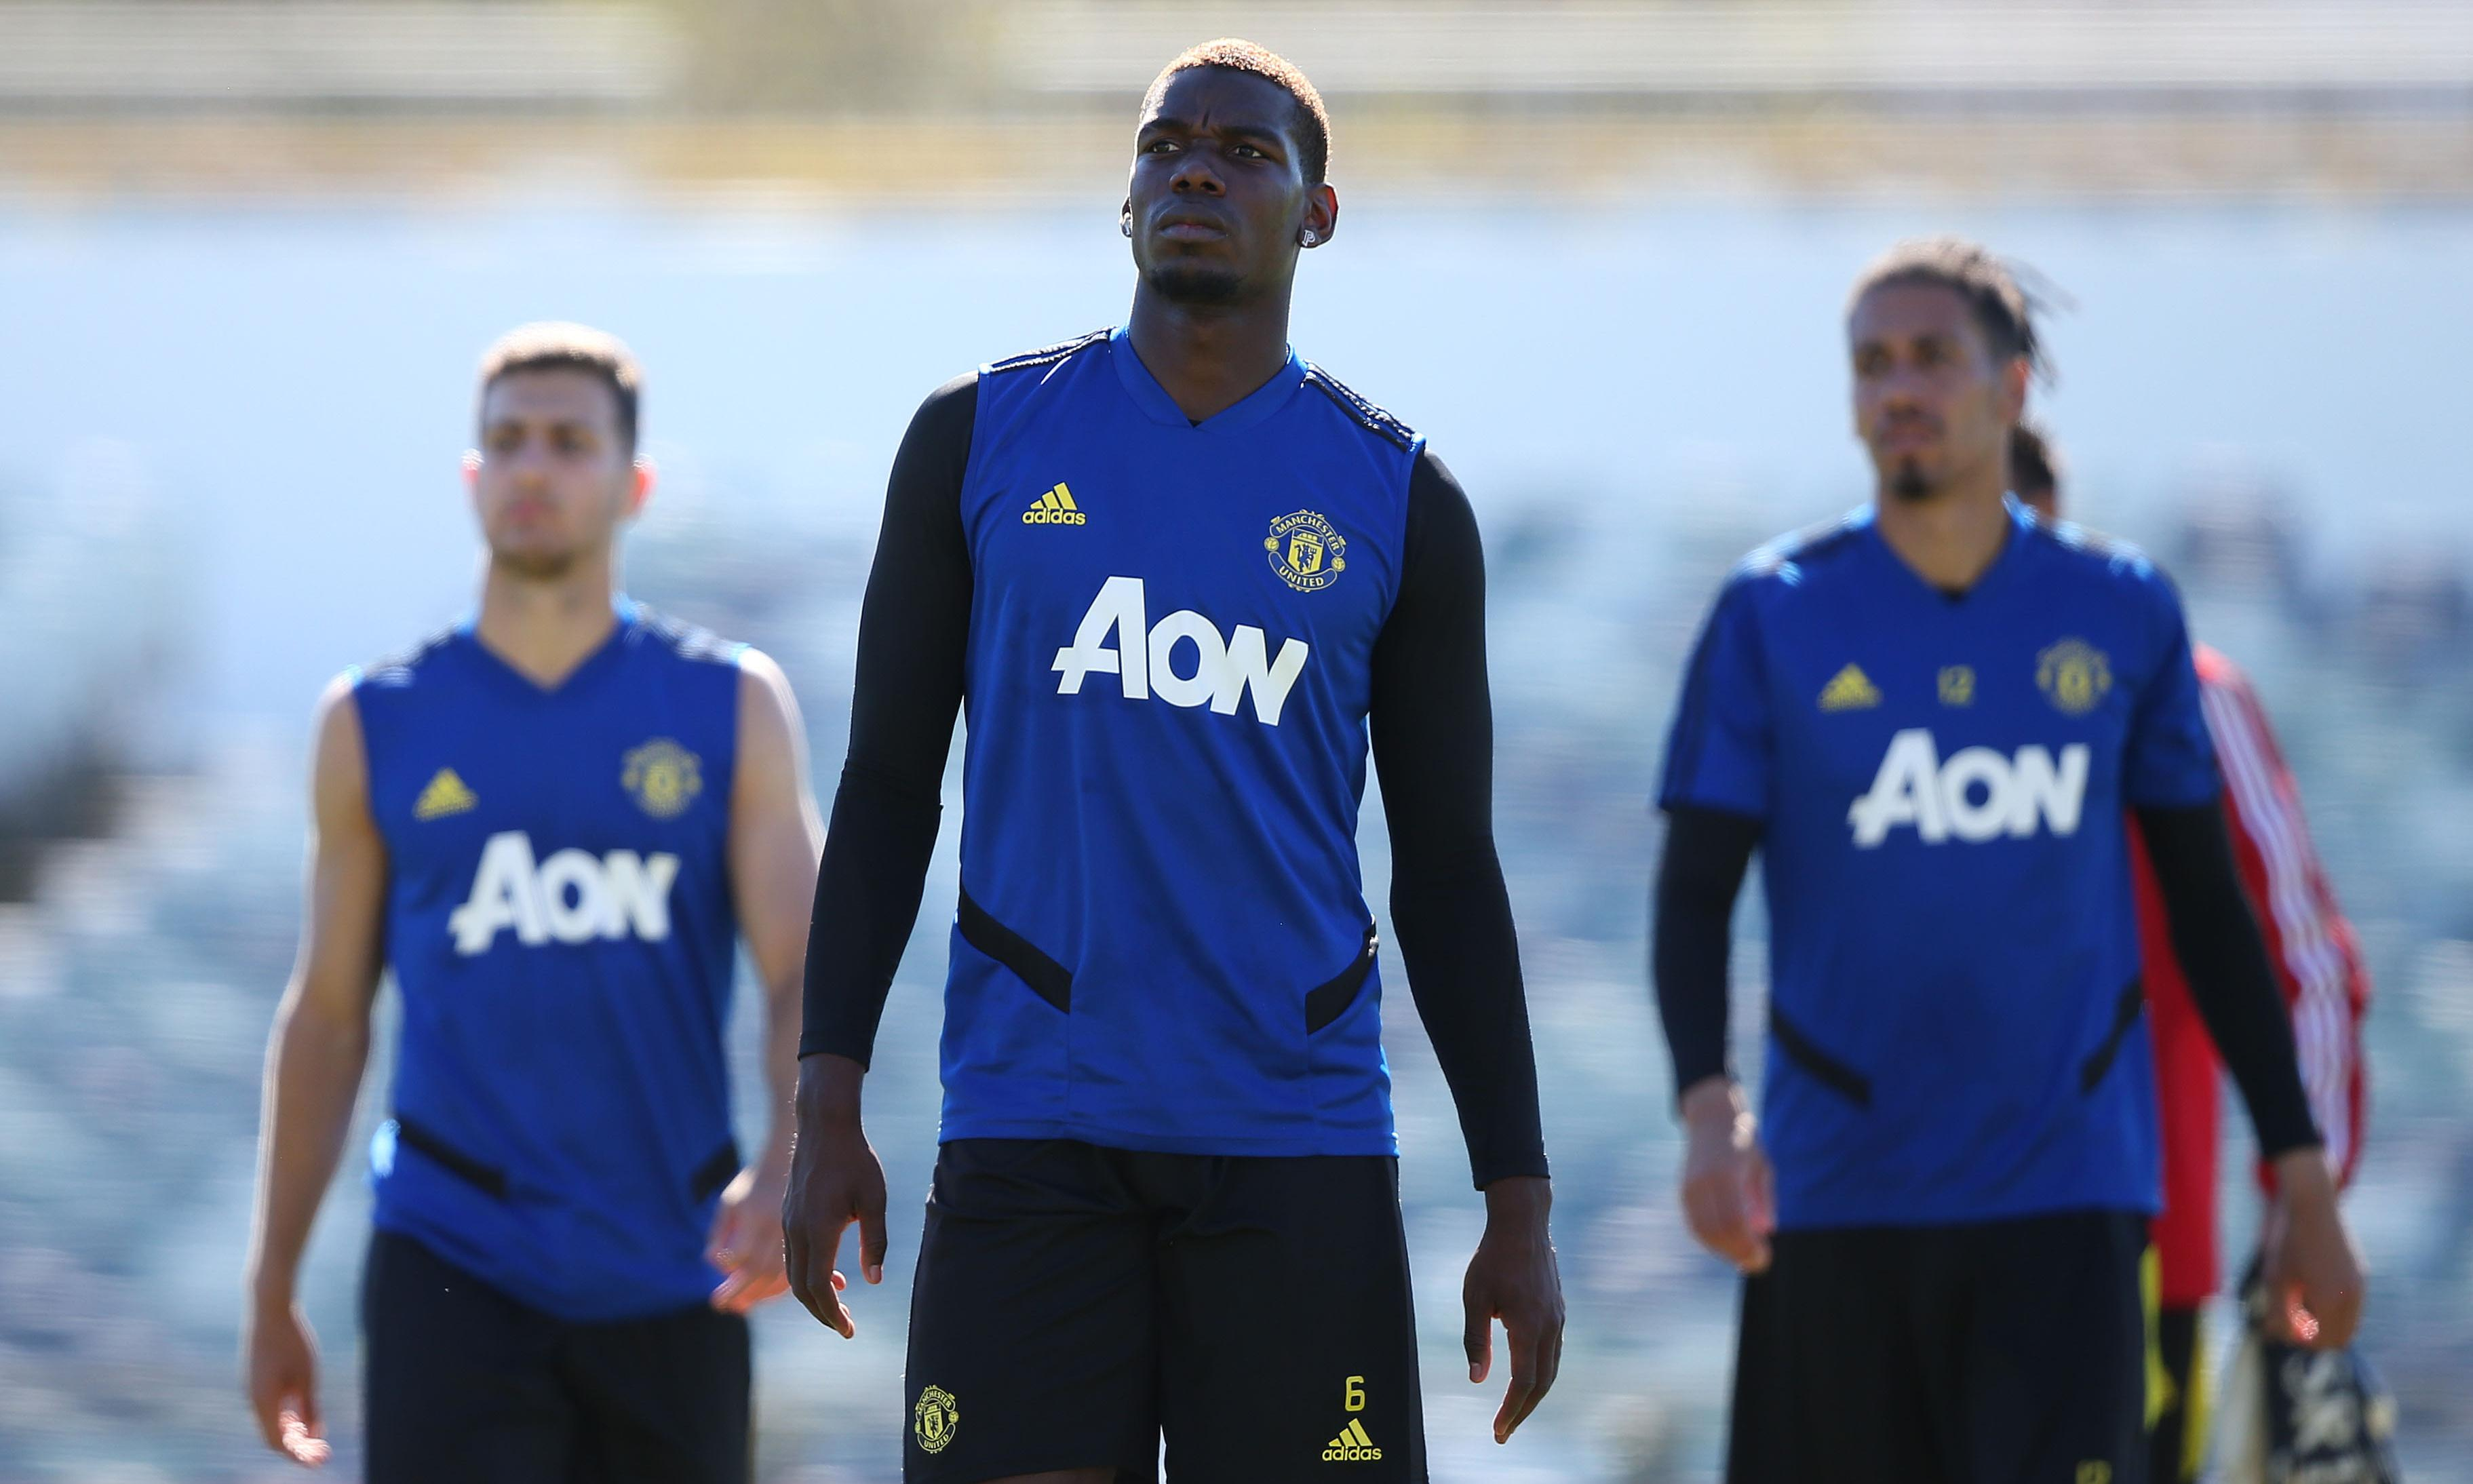 Ole Gunnar Solskjær says he can rebuild Manchester United around Paul Pogba